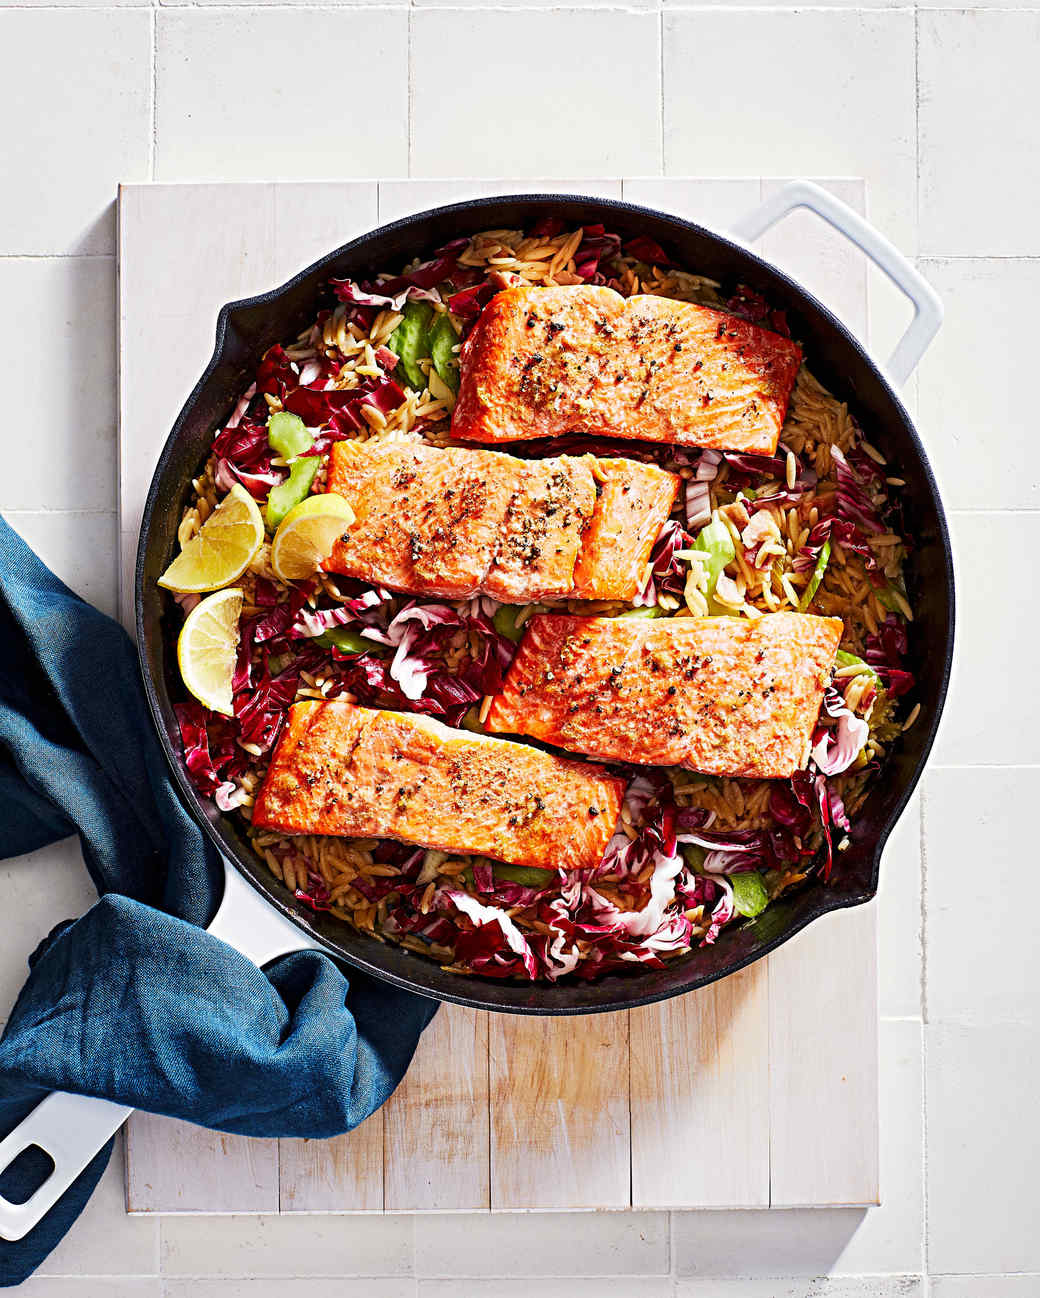 35 One-Pot Meals Just Right for Dinner Tonight